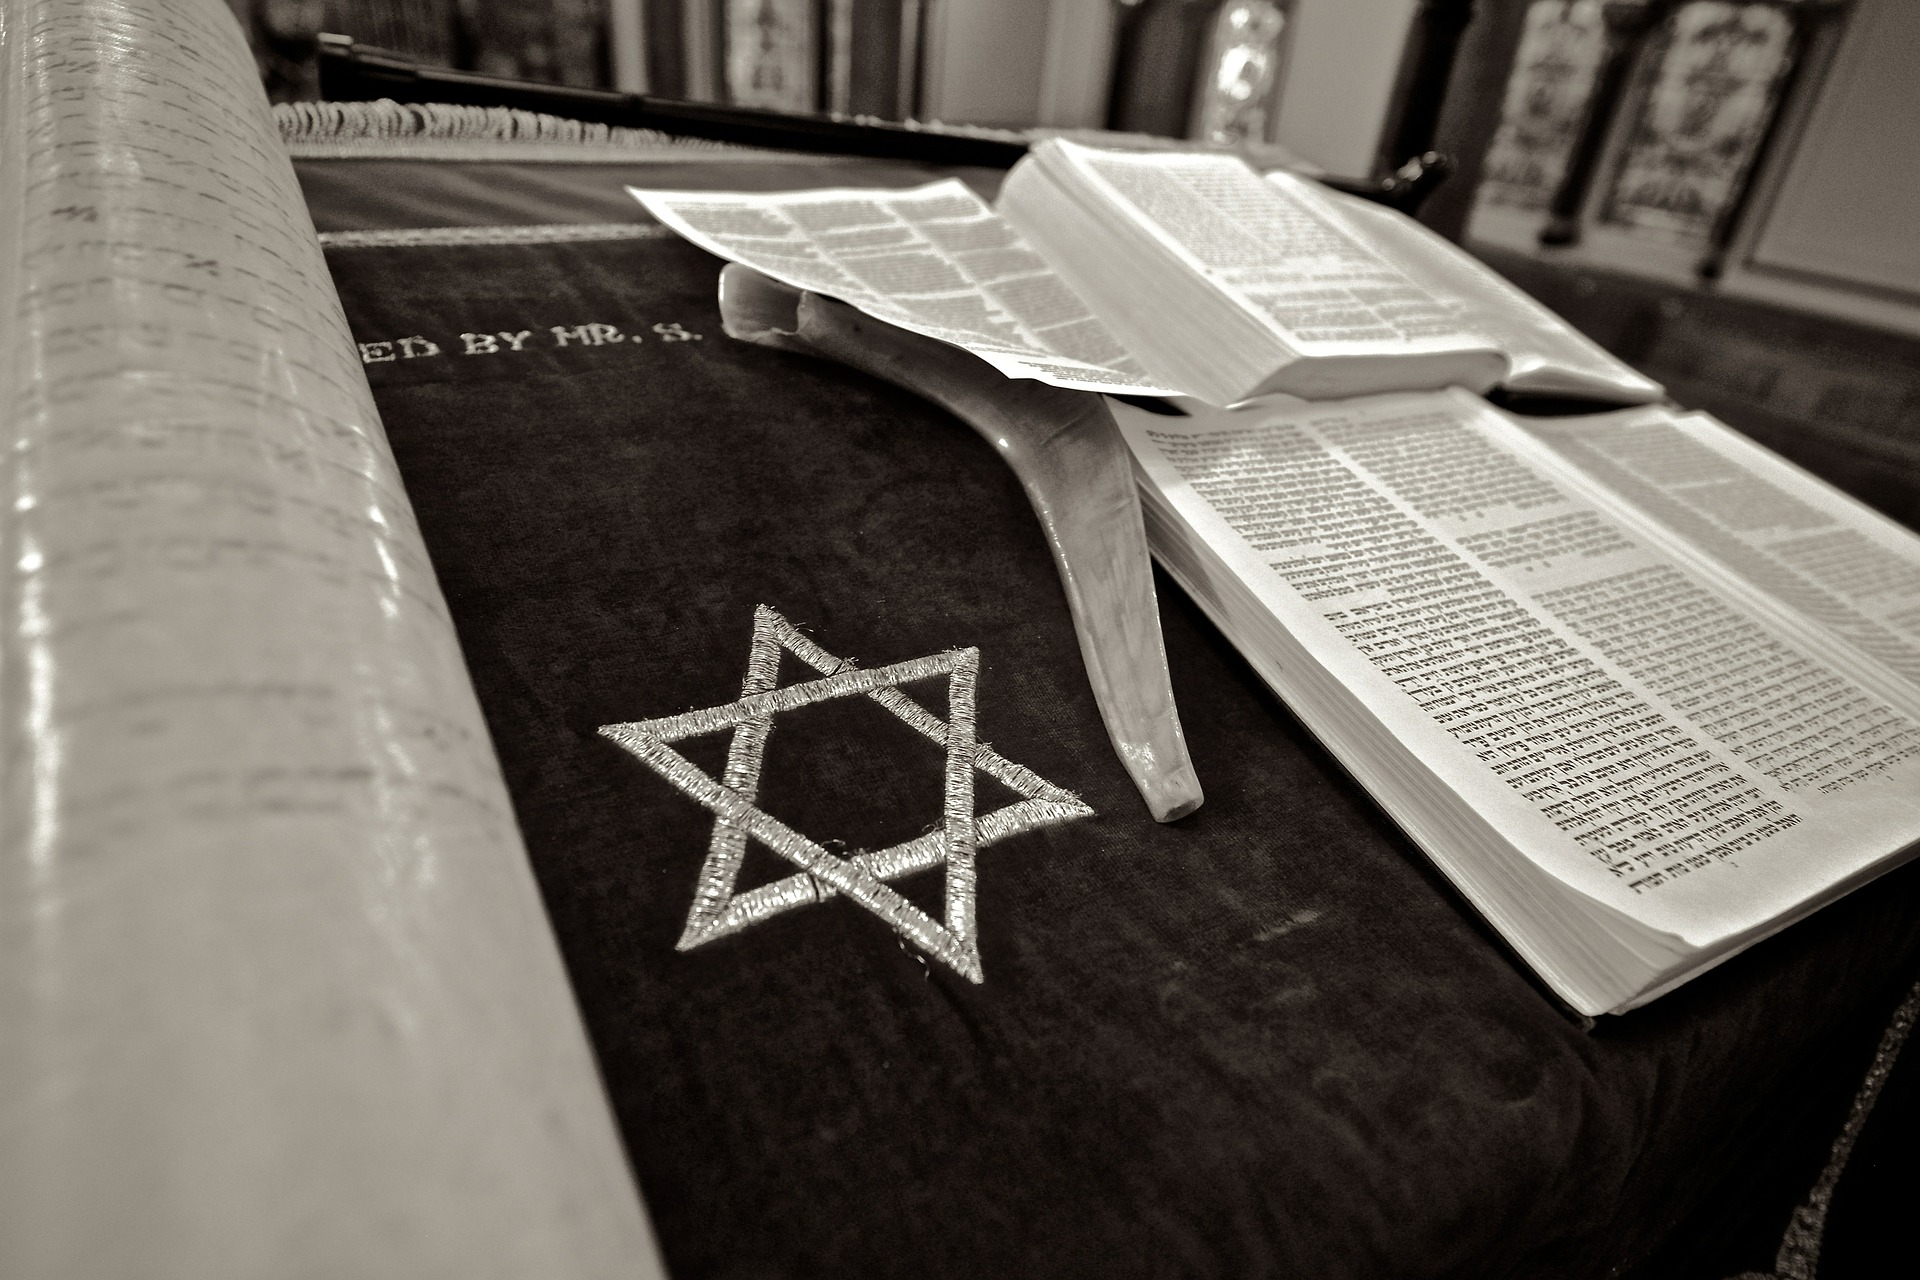 Black and white image of a Torah